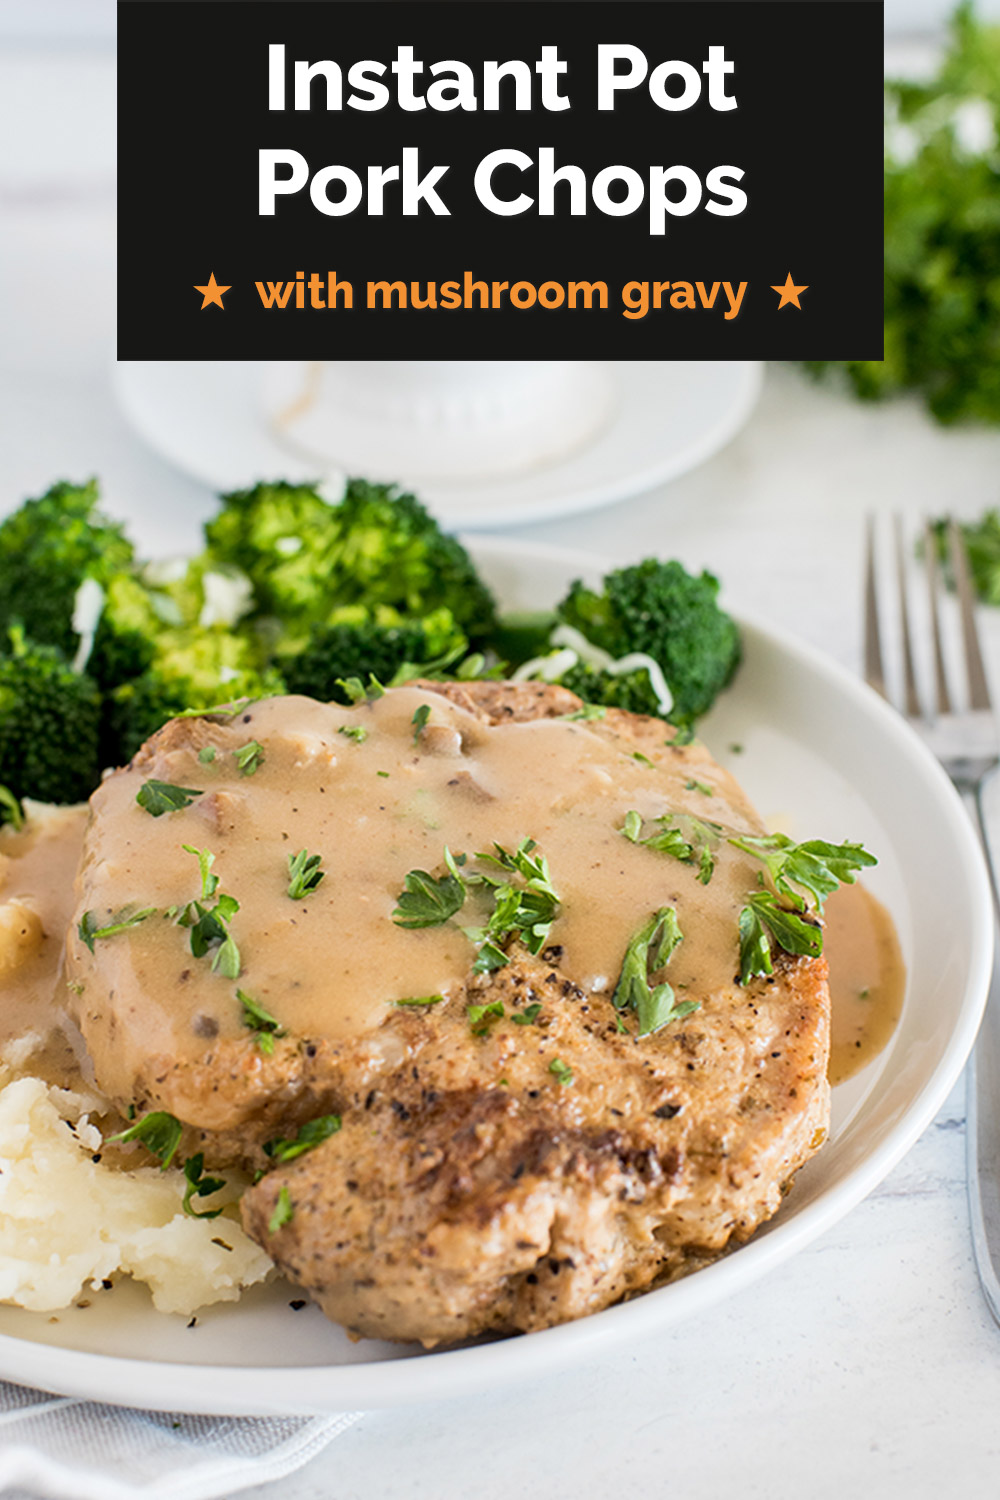 These Instant Pot Pork Chops with creamy mushroom gravy are made with cream of mushroom soup and pair perfectly with mashed potatoes or with rice. Start with a can of cream of mushroom soup to make life easier on busy nights! via @PressureCook2da